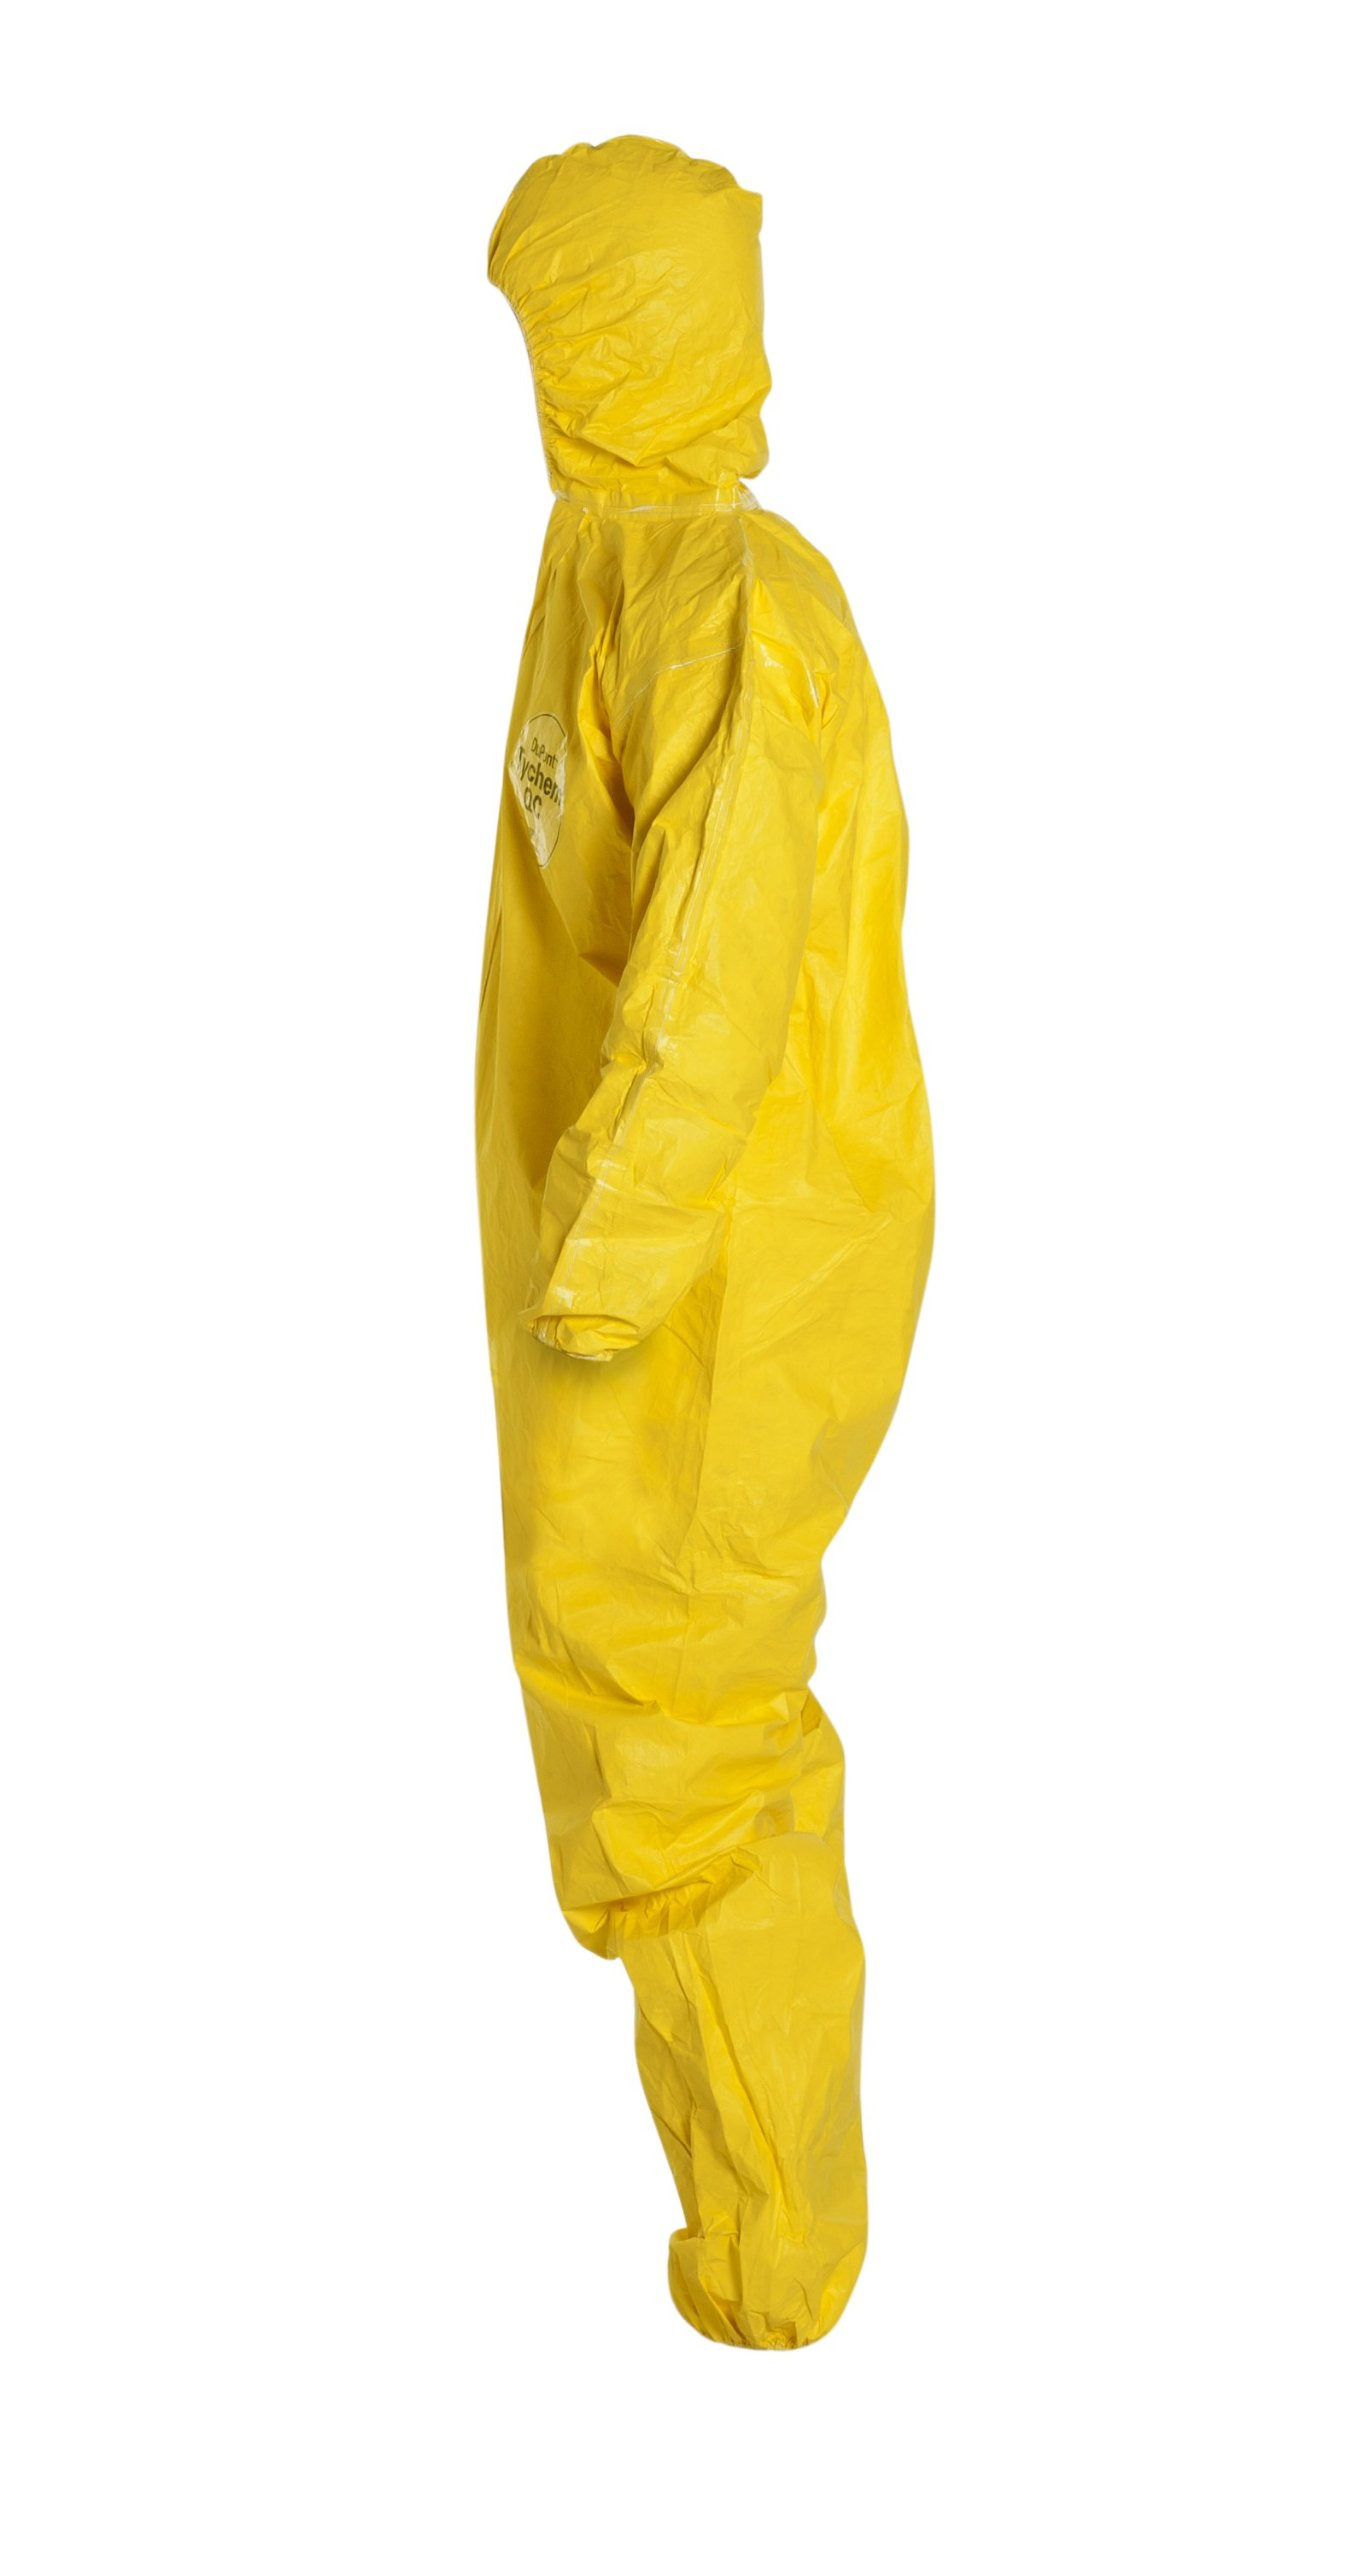 DuPont Tychem 2000 QC127S Disposable Chemical Resistant Coverall with Hood, Elastic Cuff and Serged Seams, Yellow, X-Large (Pack of 12) by DuPont (Image #5)